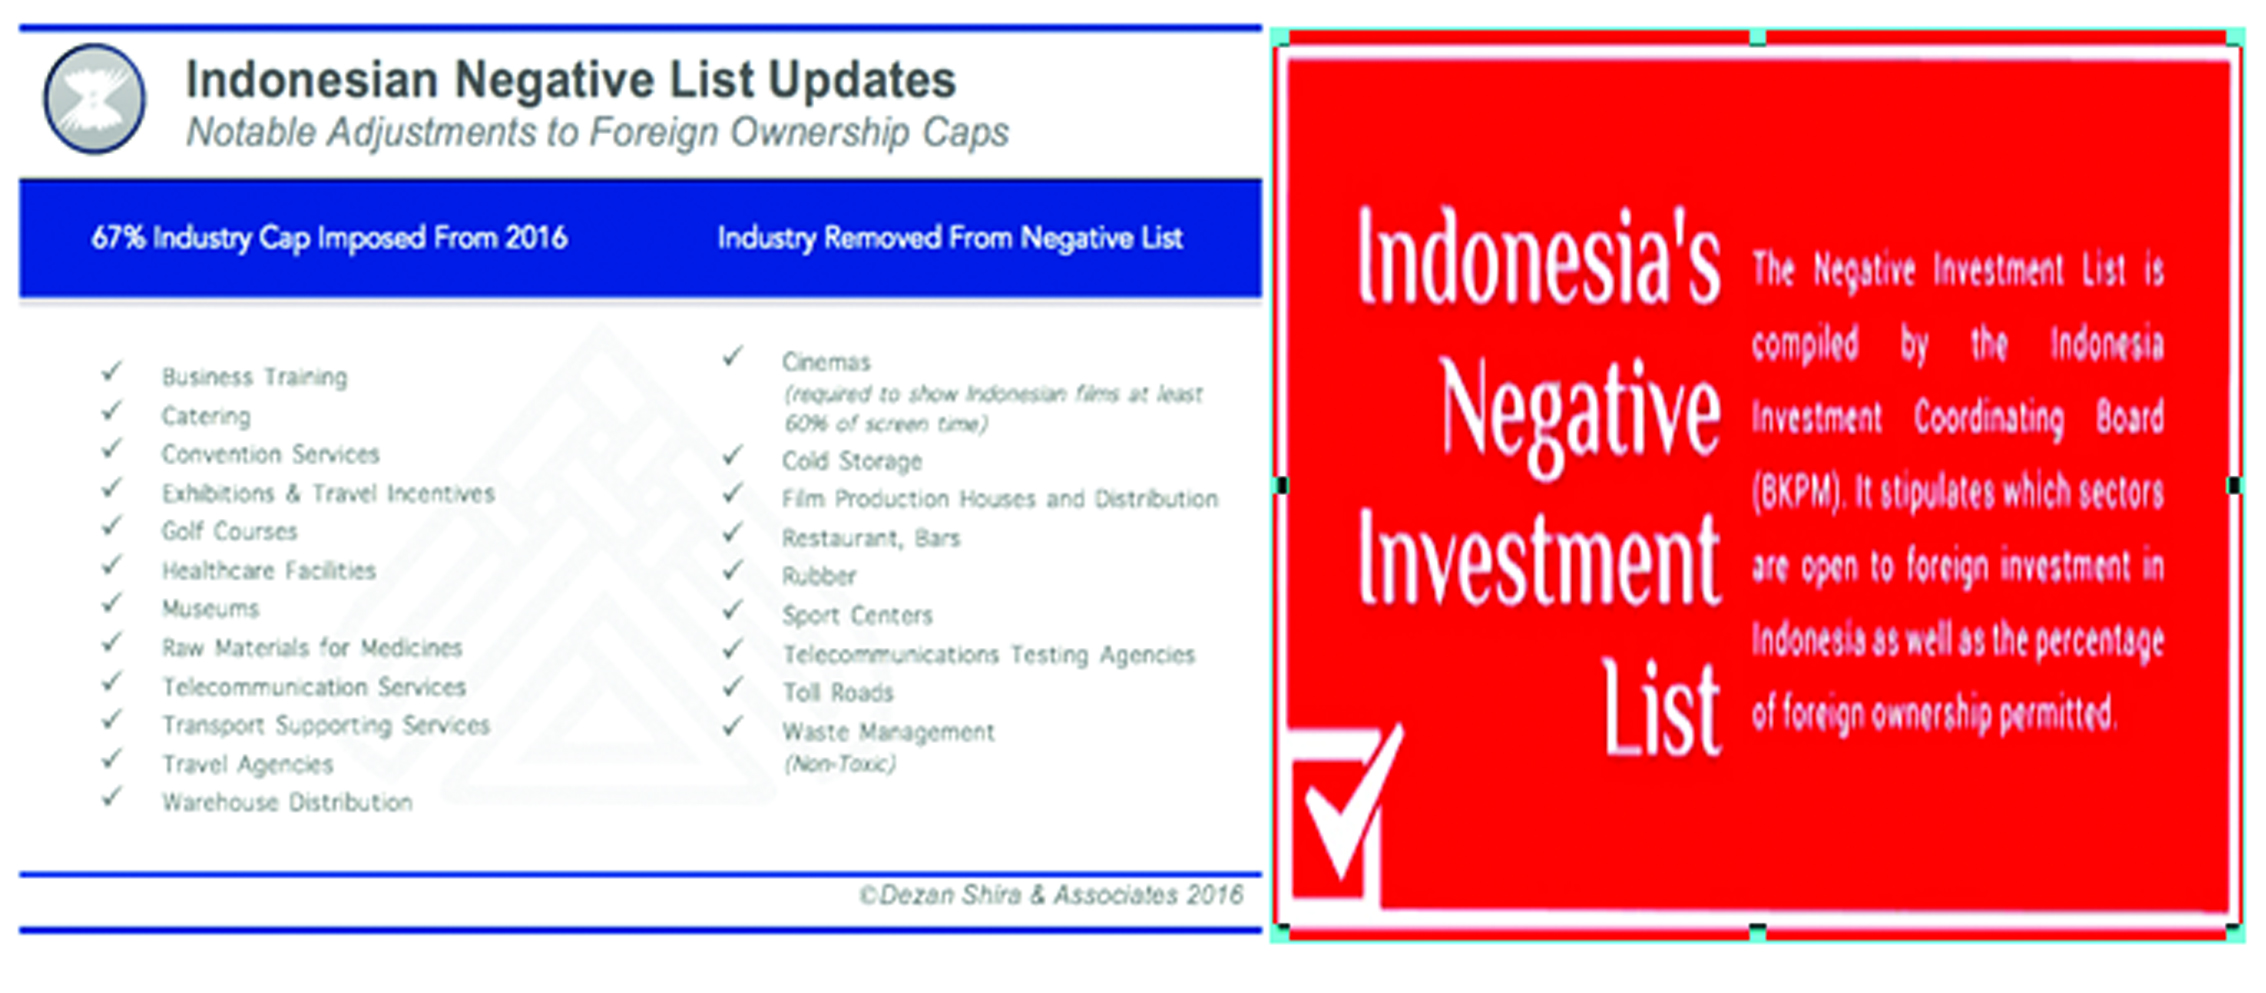 The PMA Company and the Negative List in Indonesia